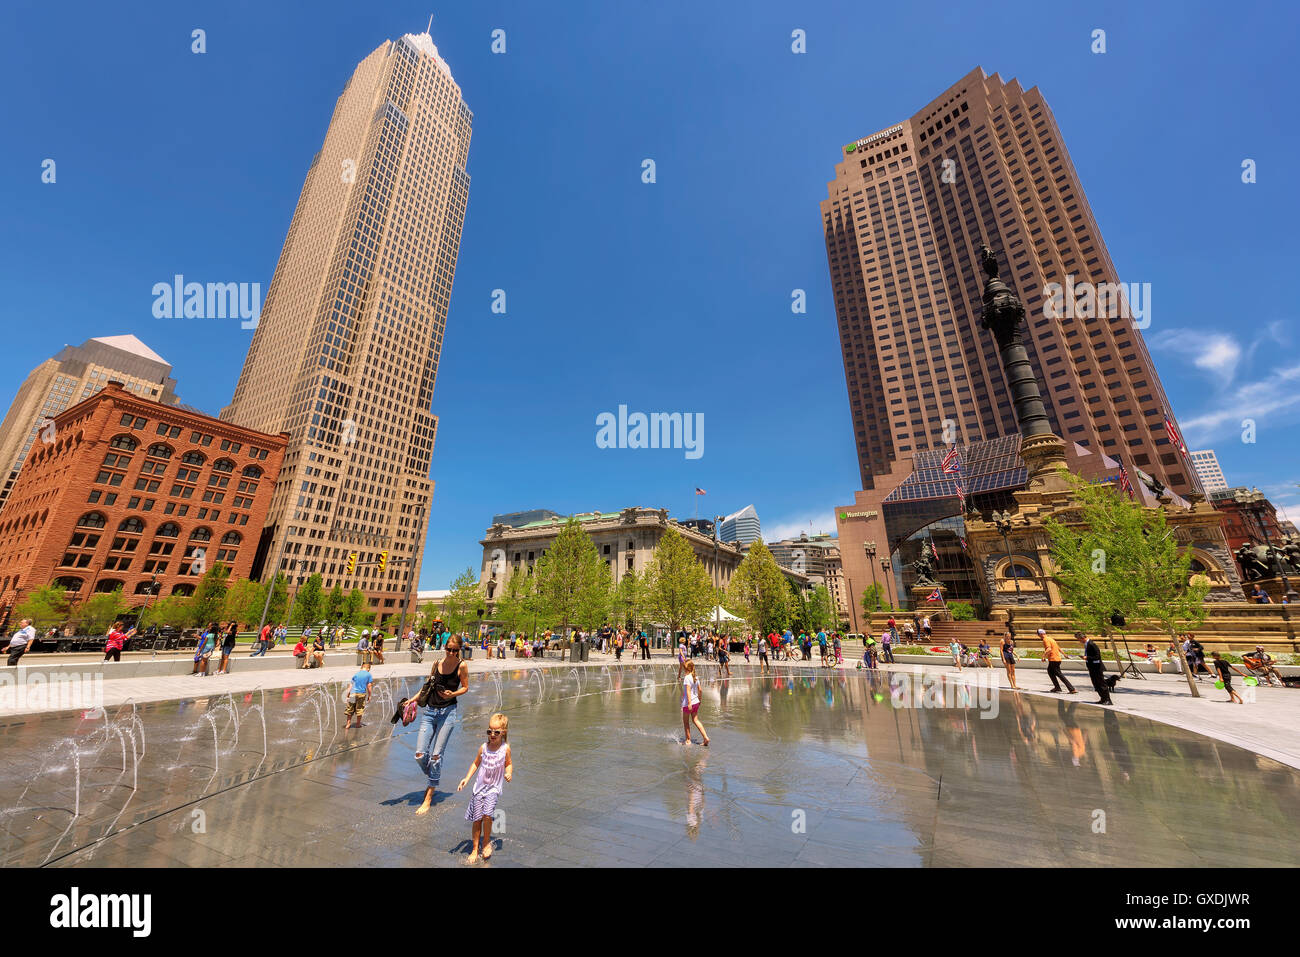 People relax near fountain in the Cleveland center Public Square, Cleveland, OH - Stock Image